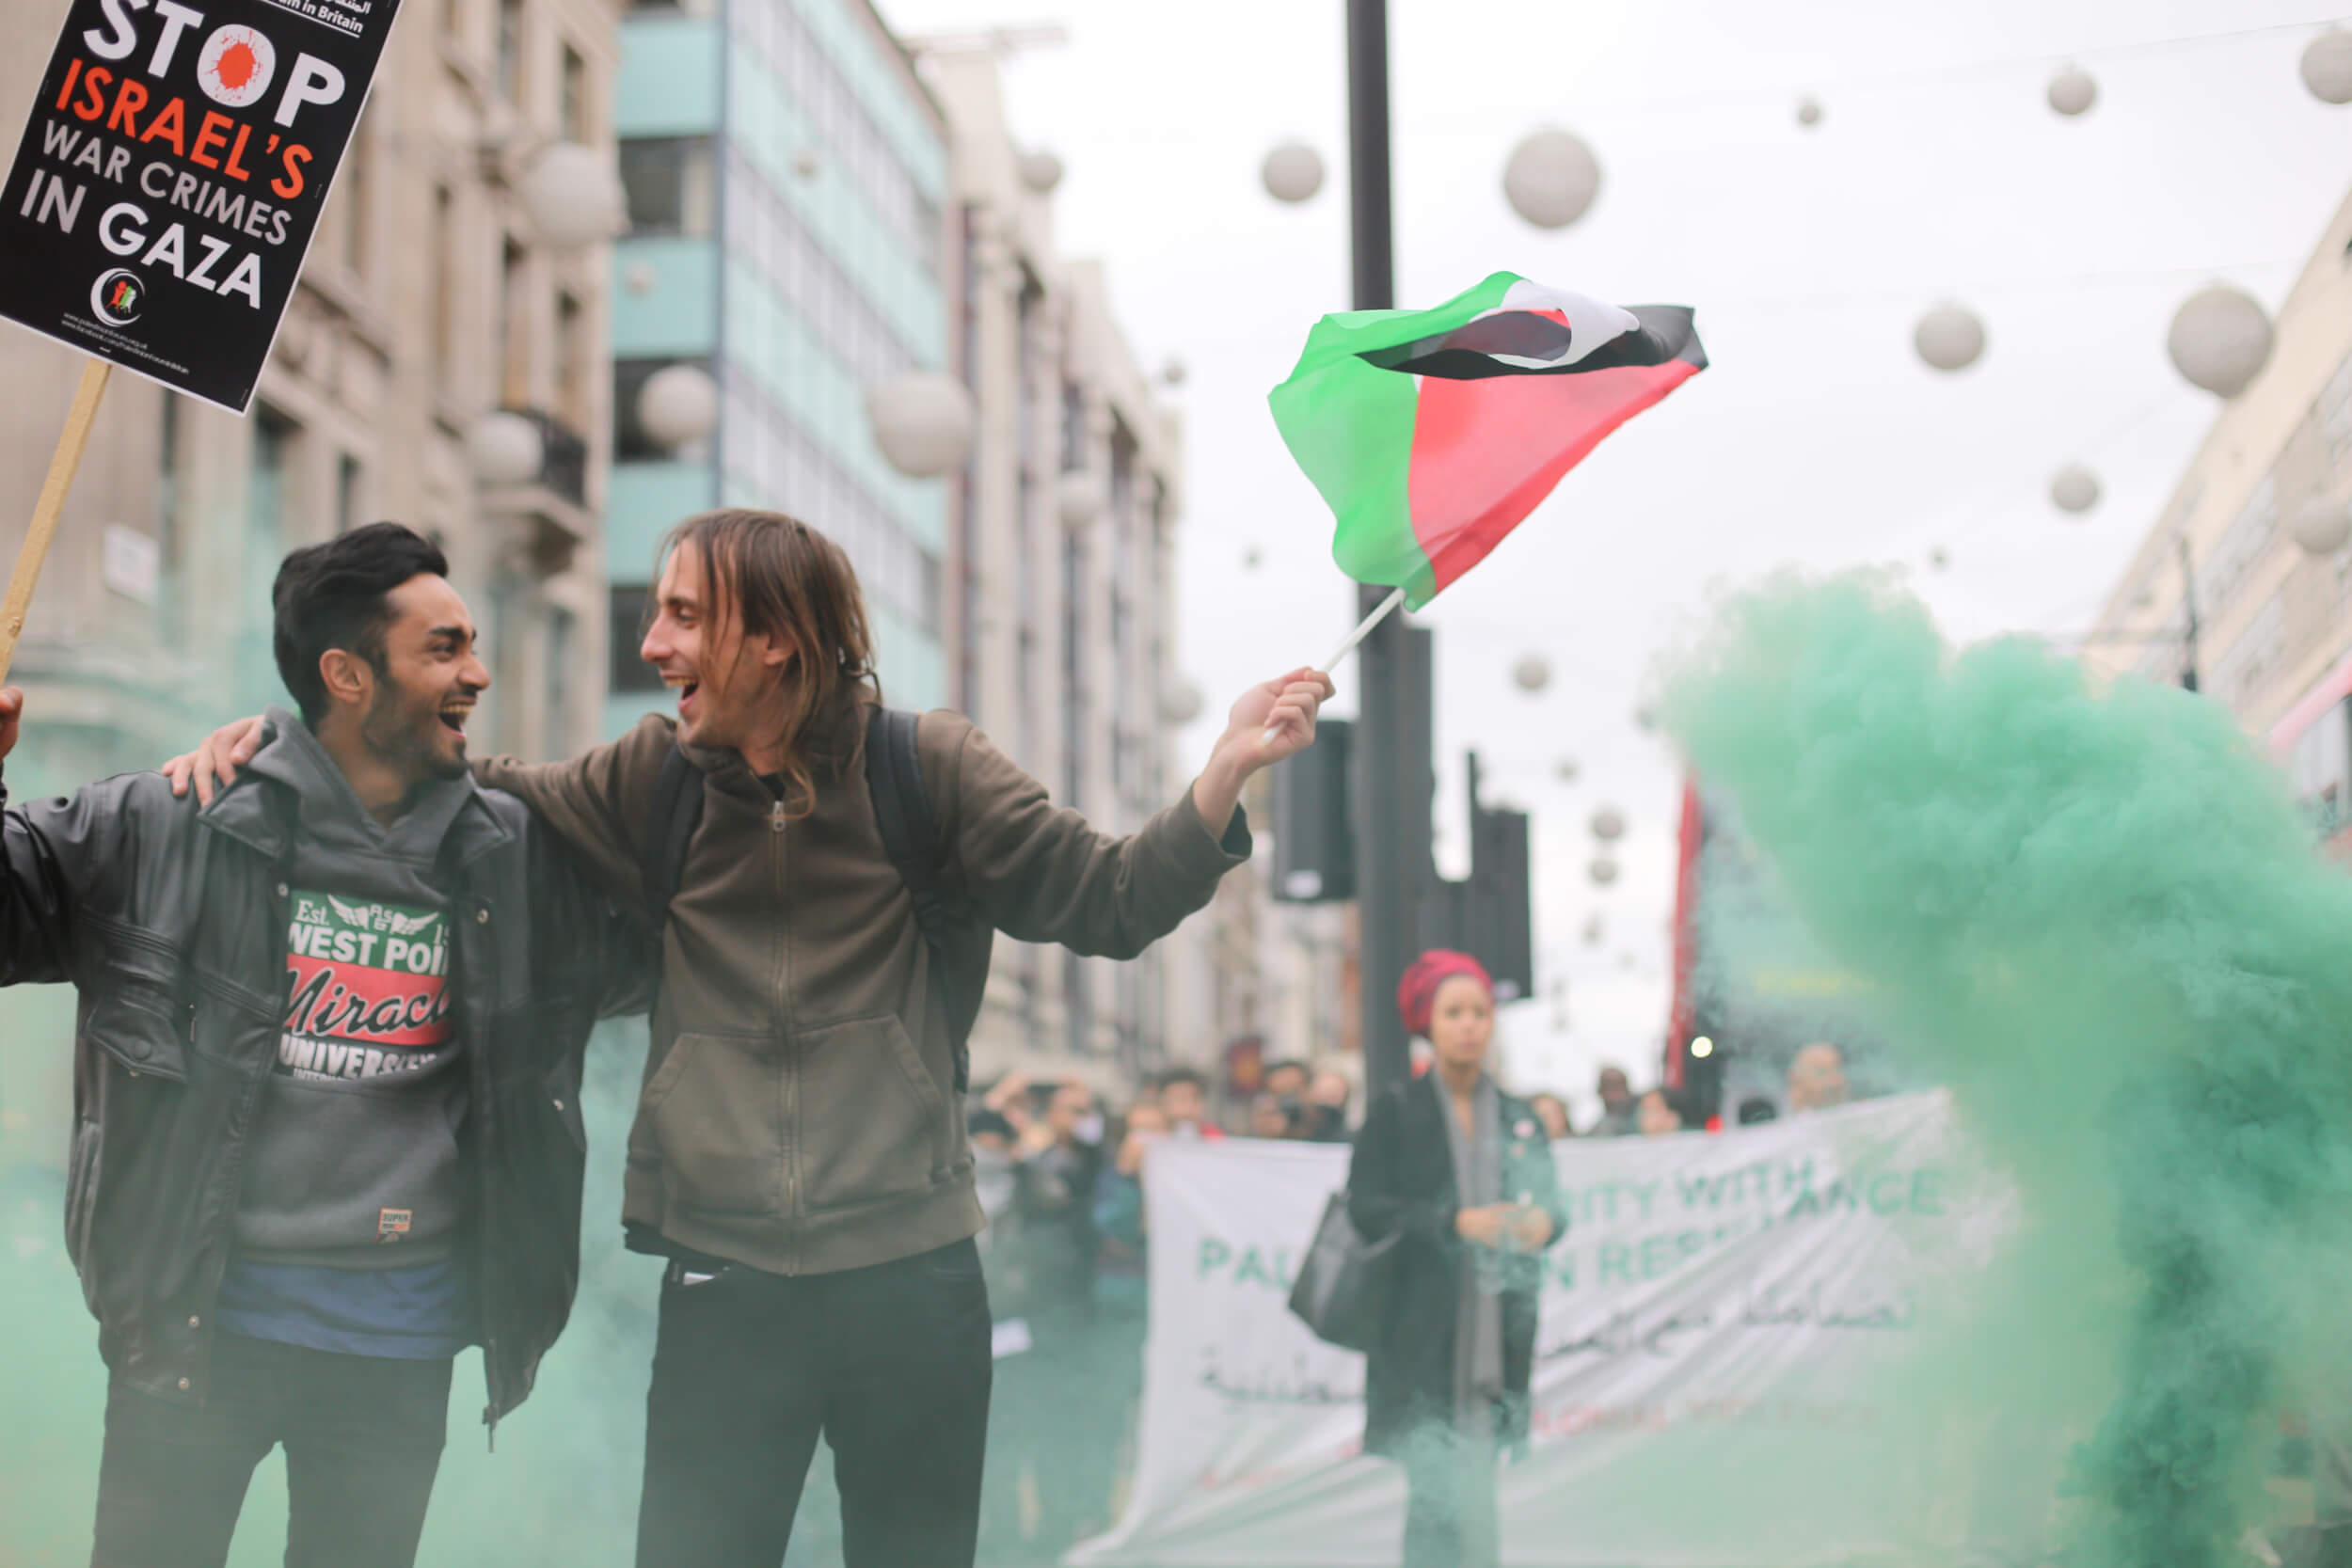 London Palestine Action protestors set off red and green smoke bombs, two of the colours of the Palestinian flag, while blocking traffic at Oxford Circus. (Photo: Sara Anna)